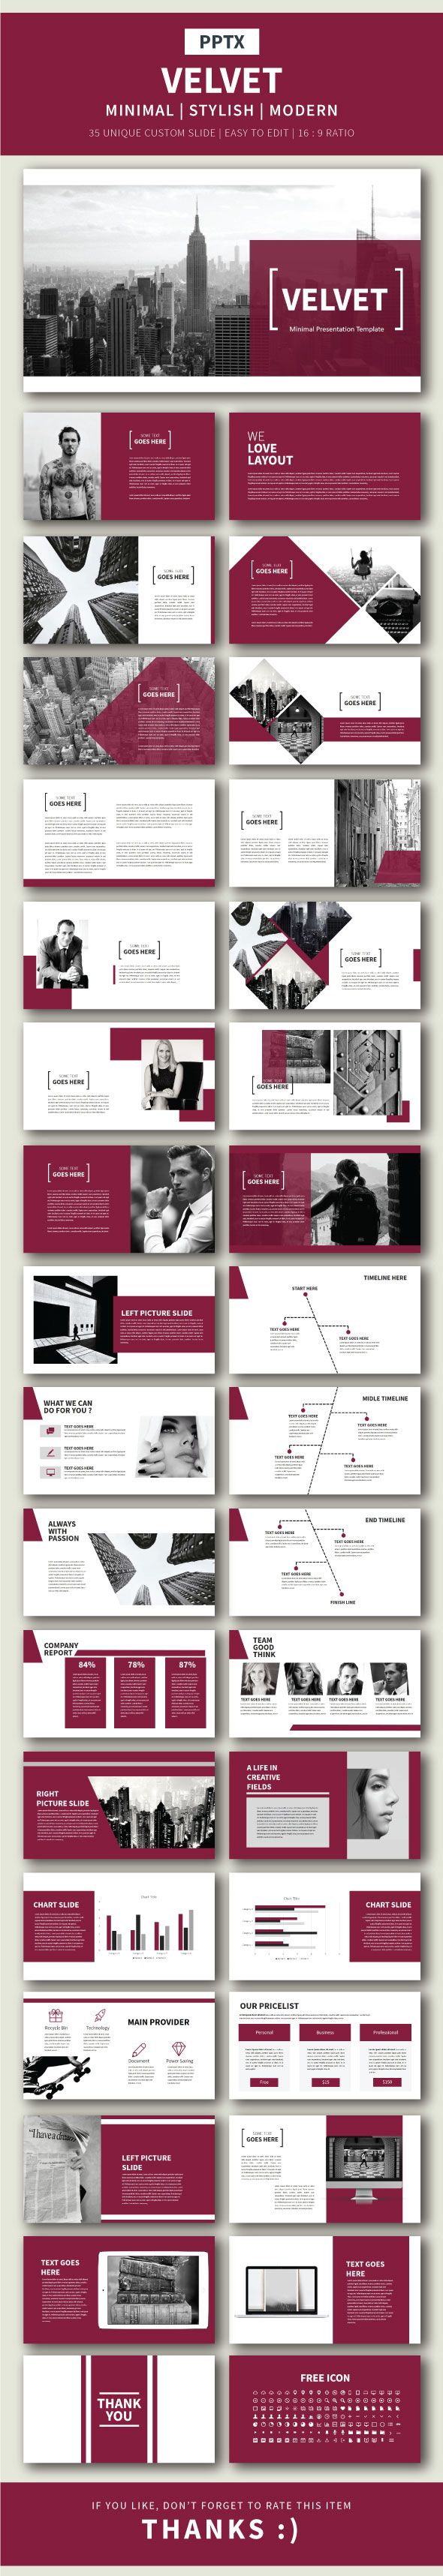 Velvet Presentation Template - Finance PowerPoint Templates